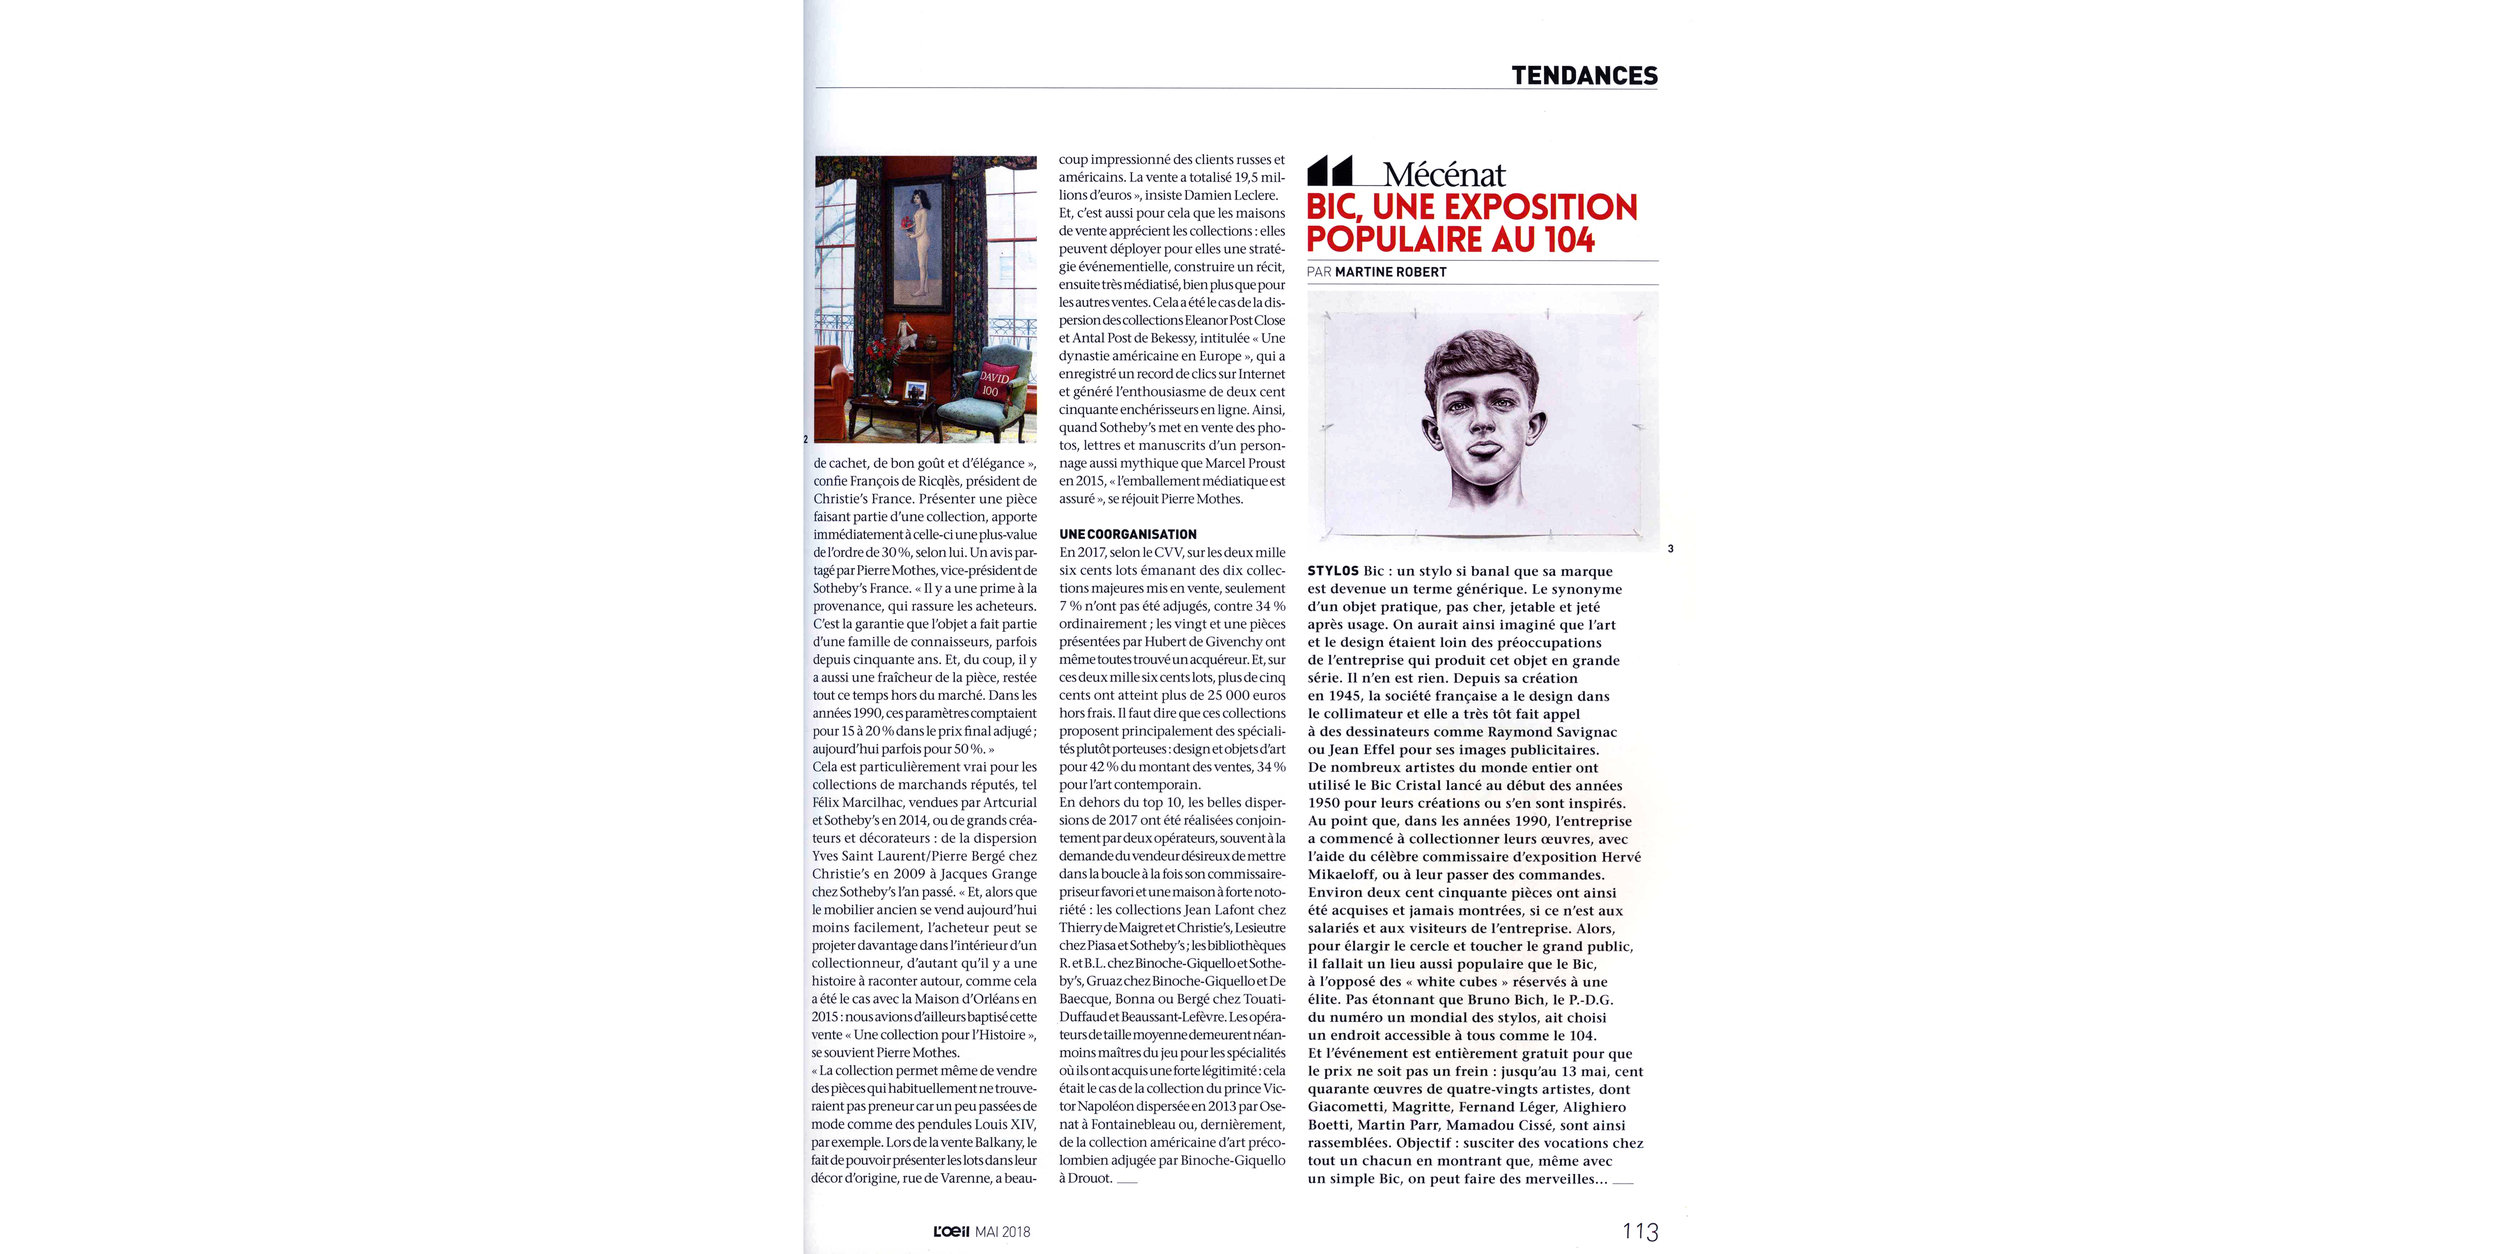 THE KID in L OEIL Magazine - May 2018 Print Issue - France - Page 113 - Page 113 - Web wb.jpg